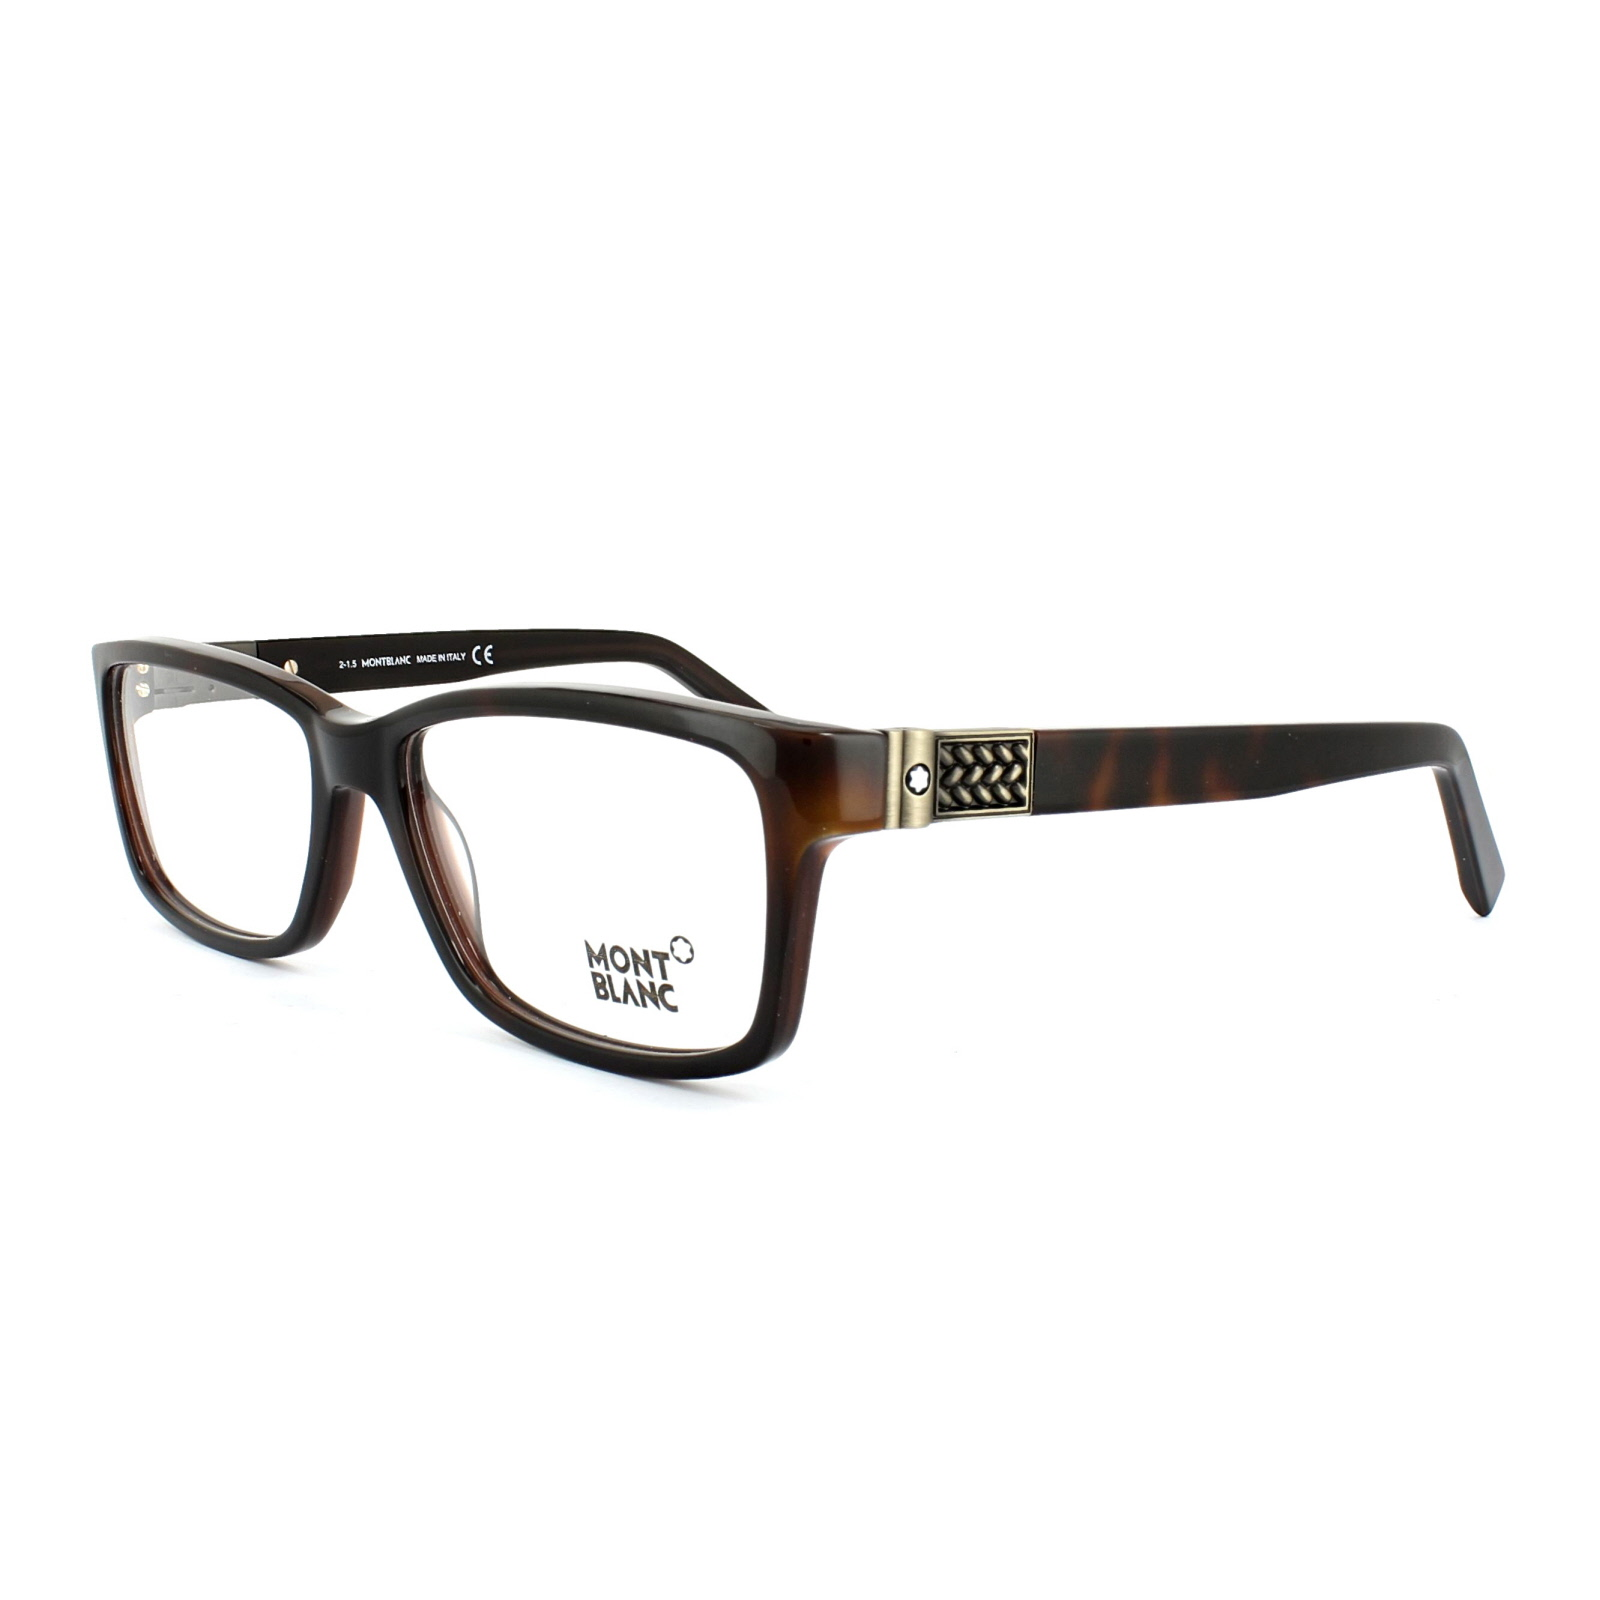 cheap mont blanc 0443 glasses frames discounted sunglasses